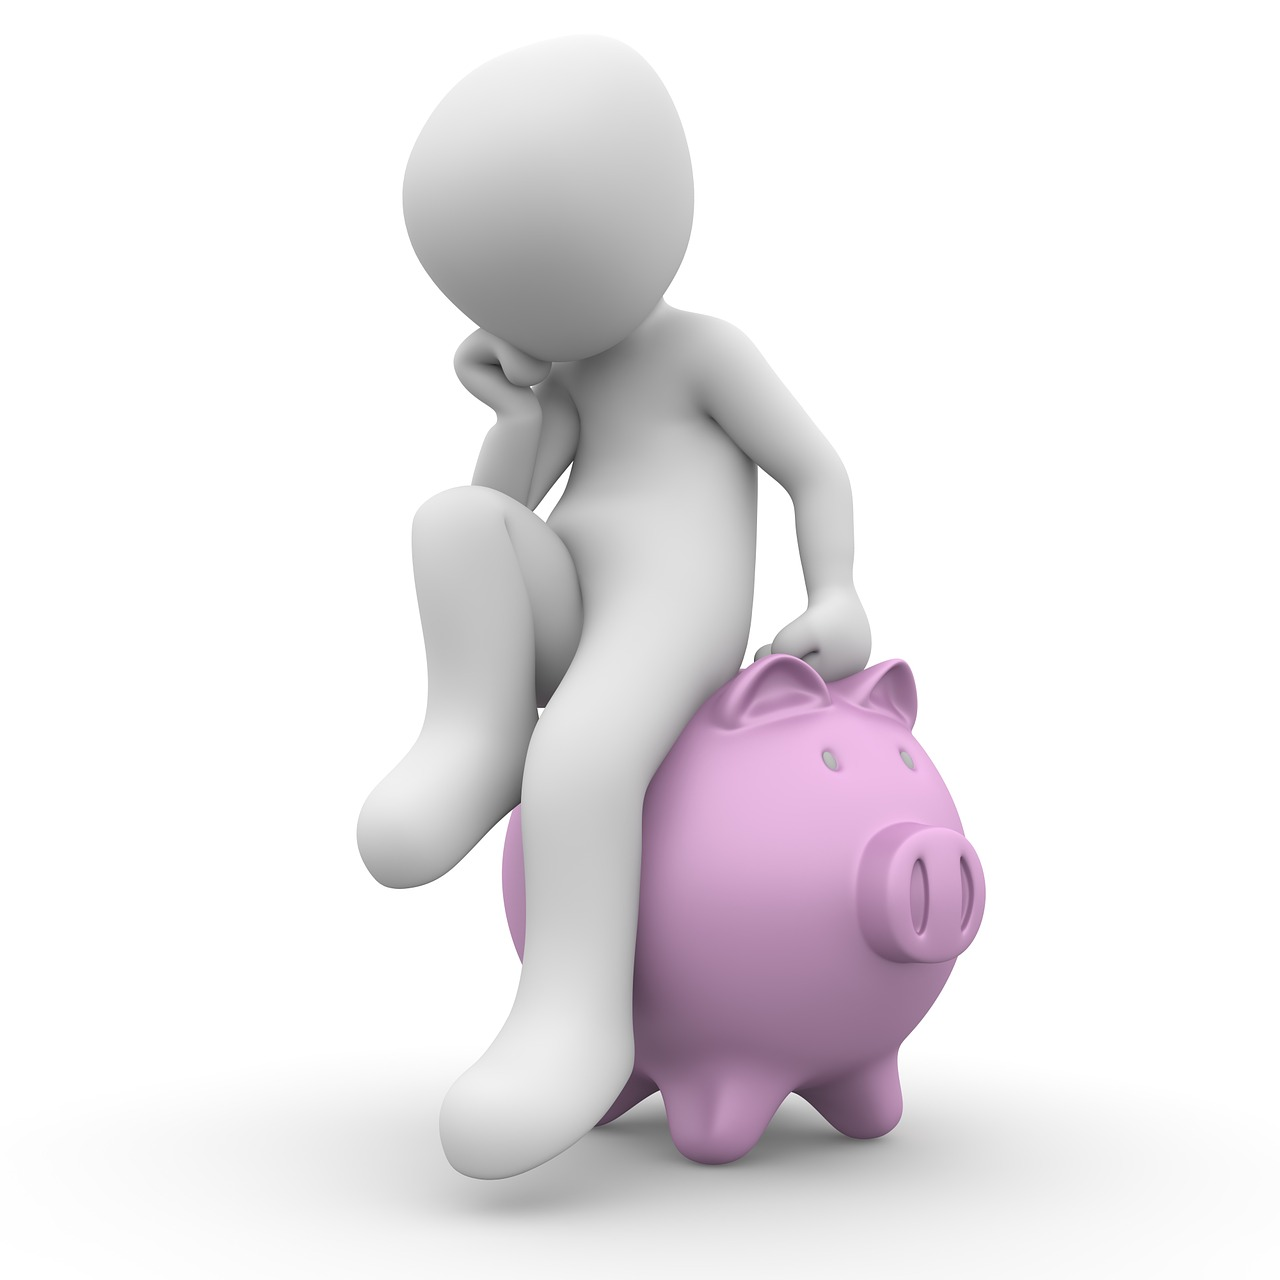 401k Rollover to Annuity: convert 401k to Annuity